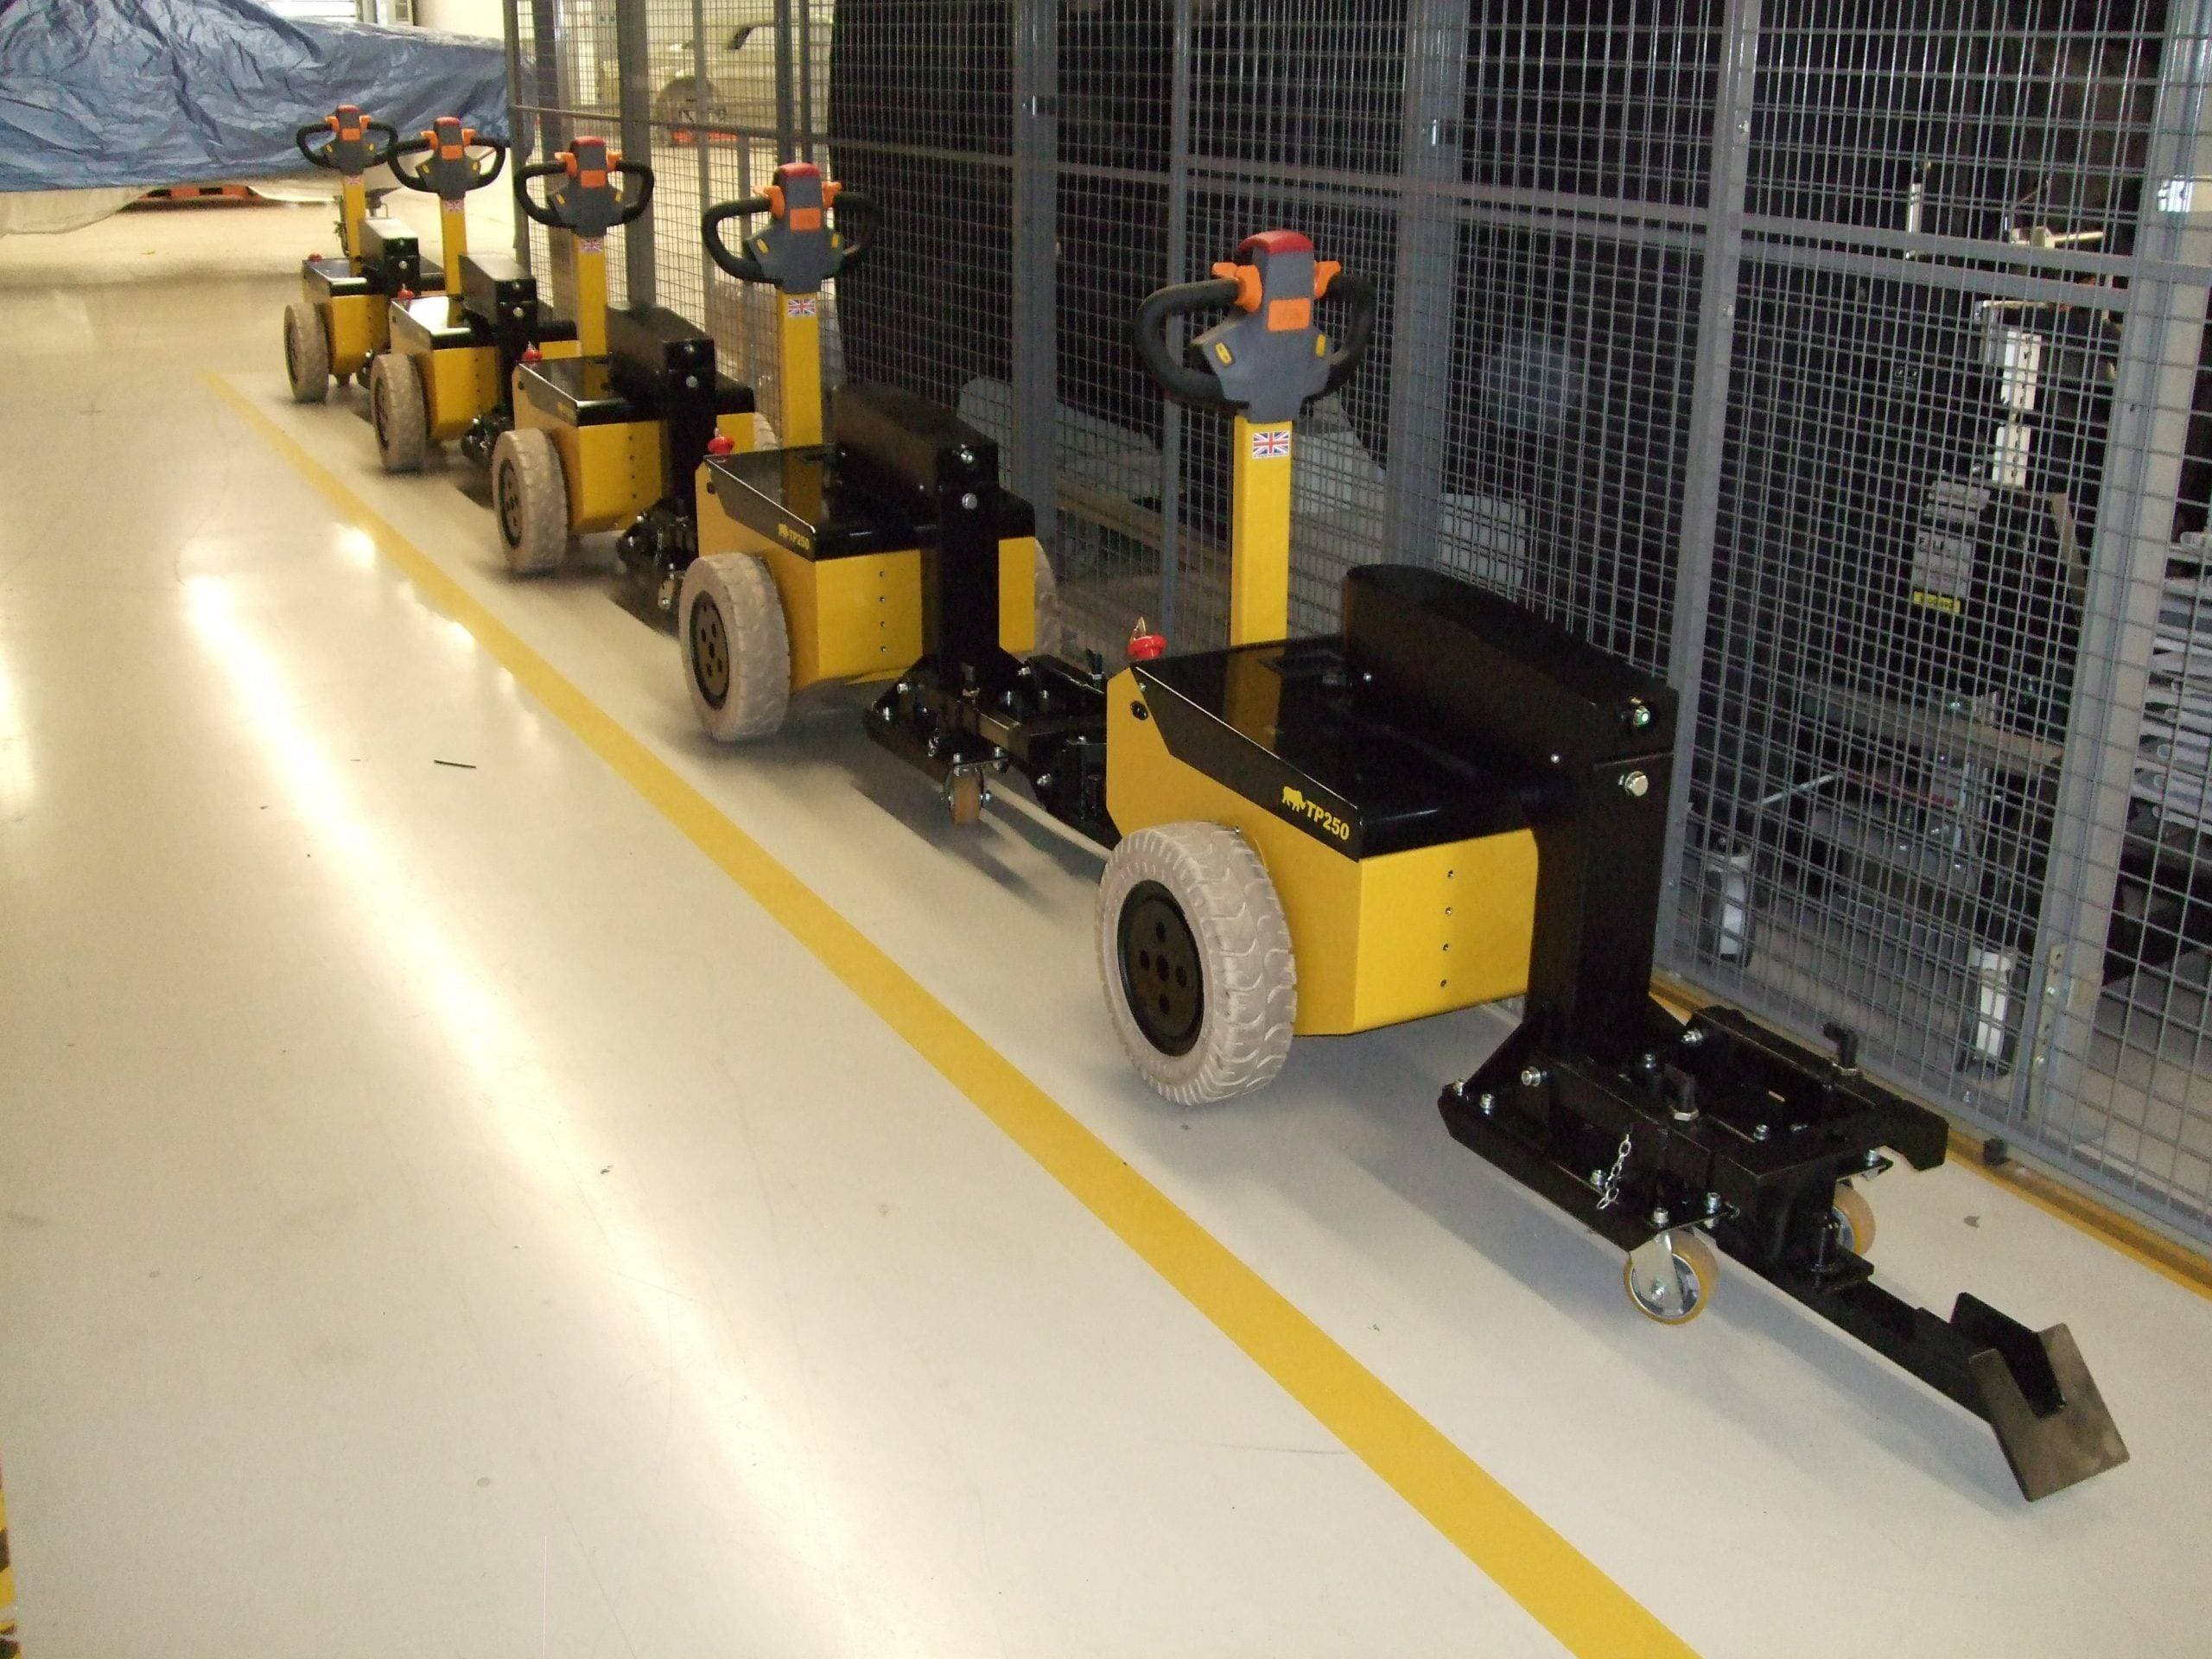 Battery powered tugs used in manufacturing - vehicle movers